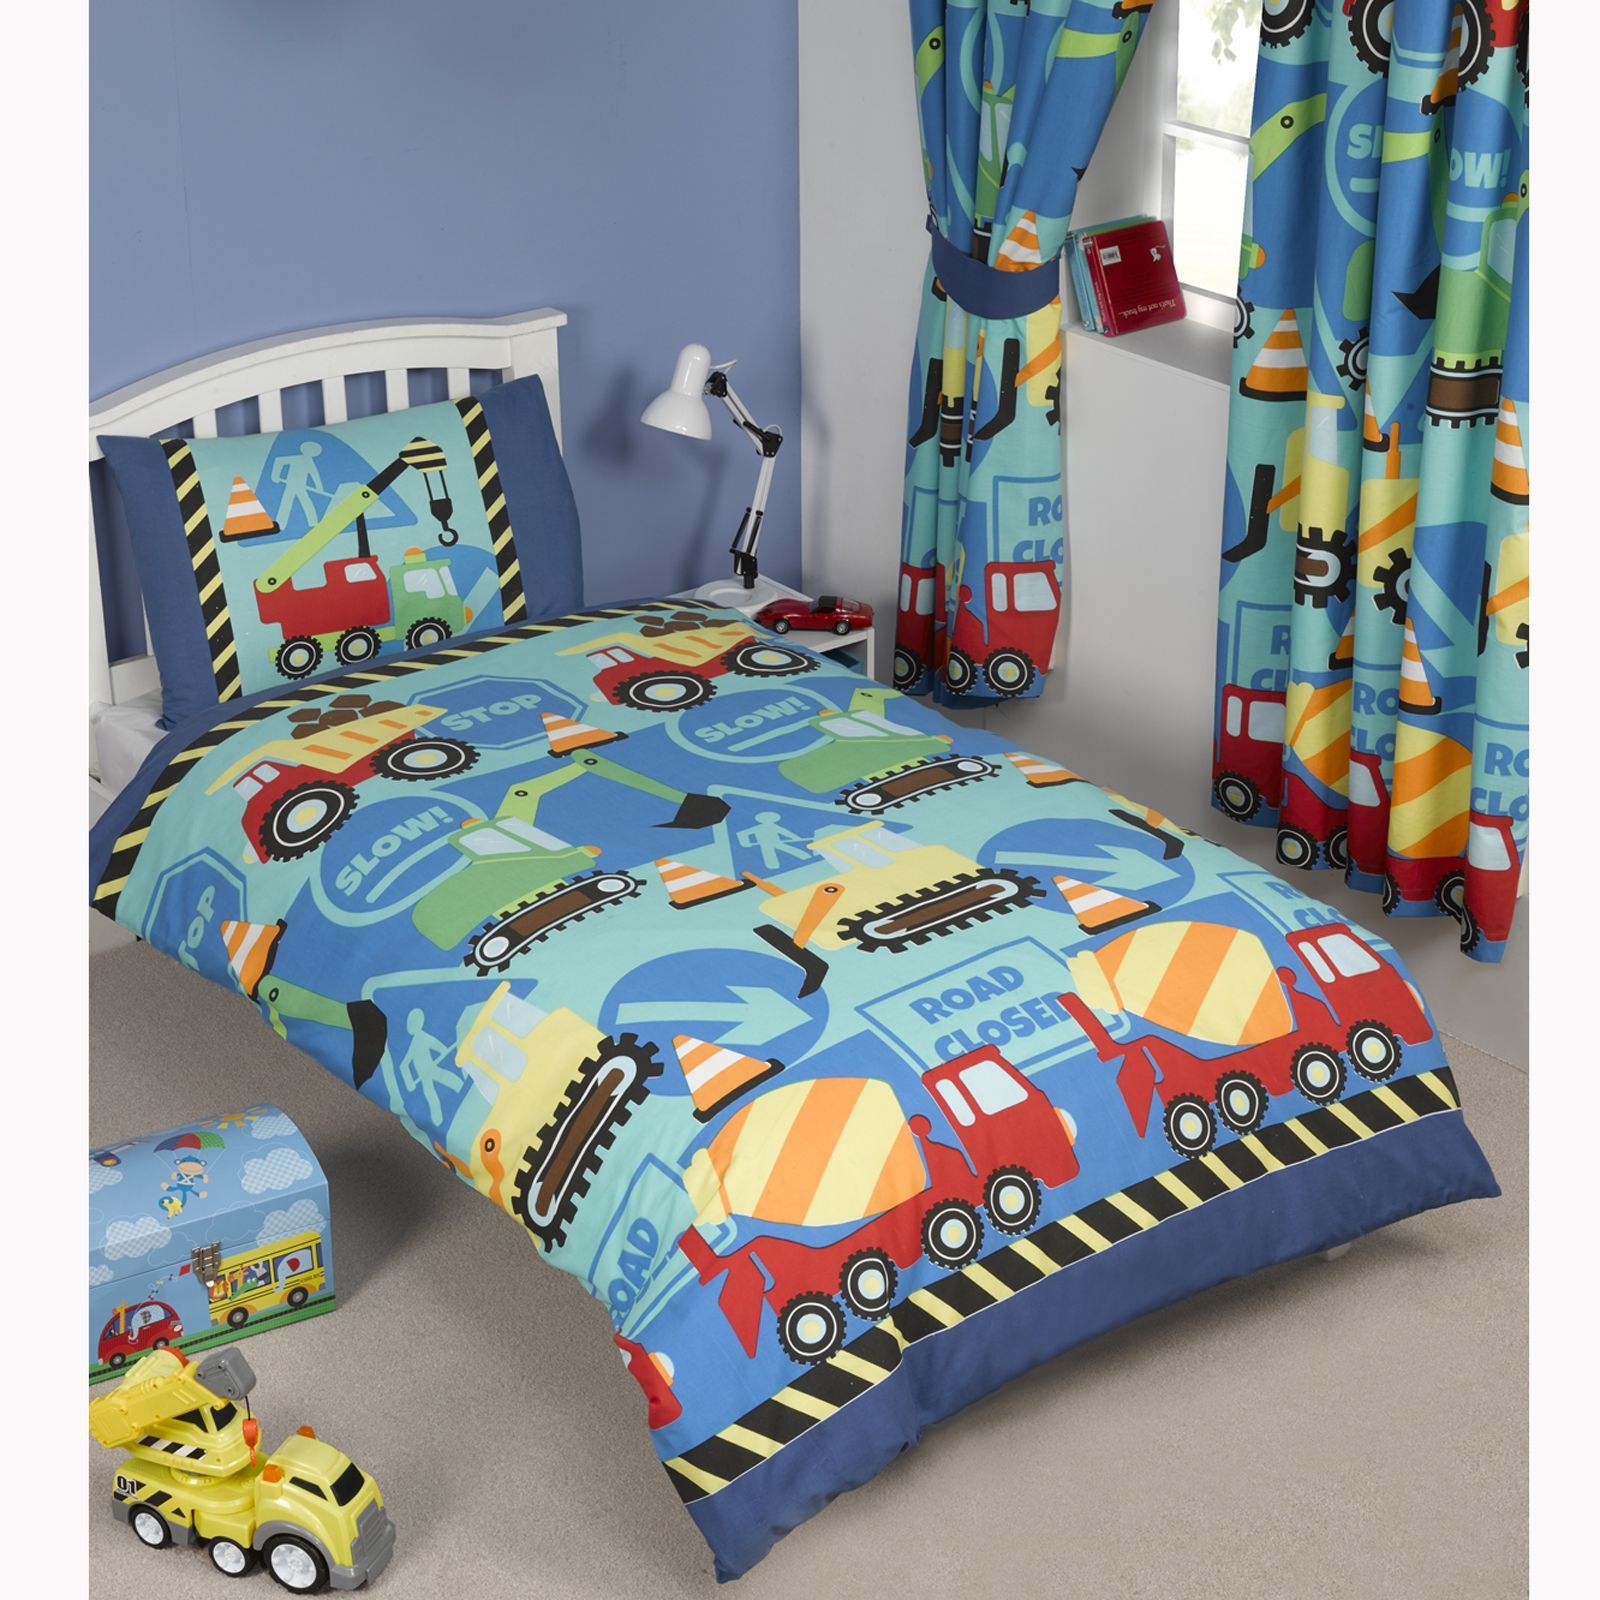 kinder einzel bettw sche sets jungen m dchen einhorn. Black Bedroom Furniture Sets. Home Design Ideas